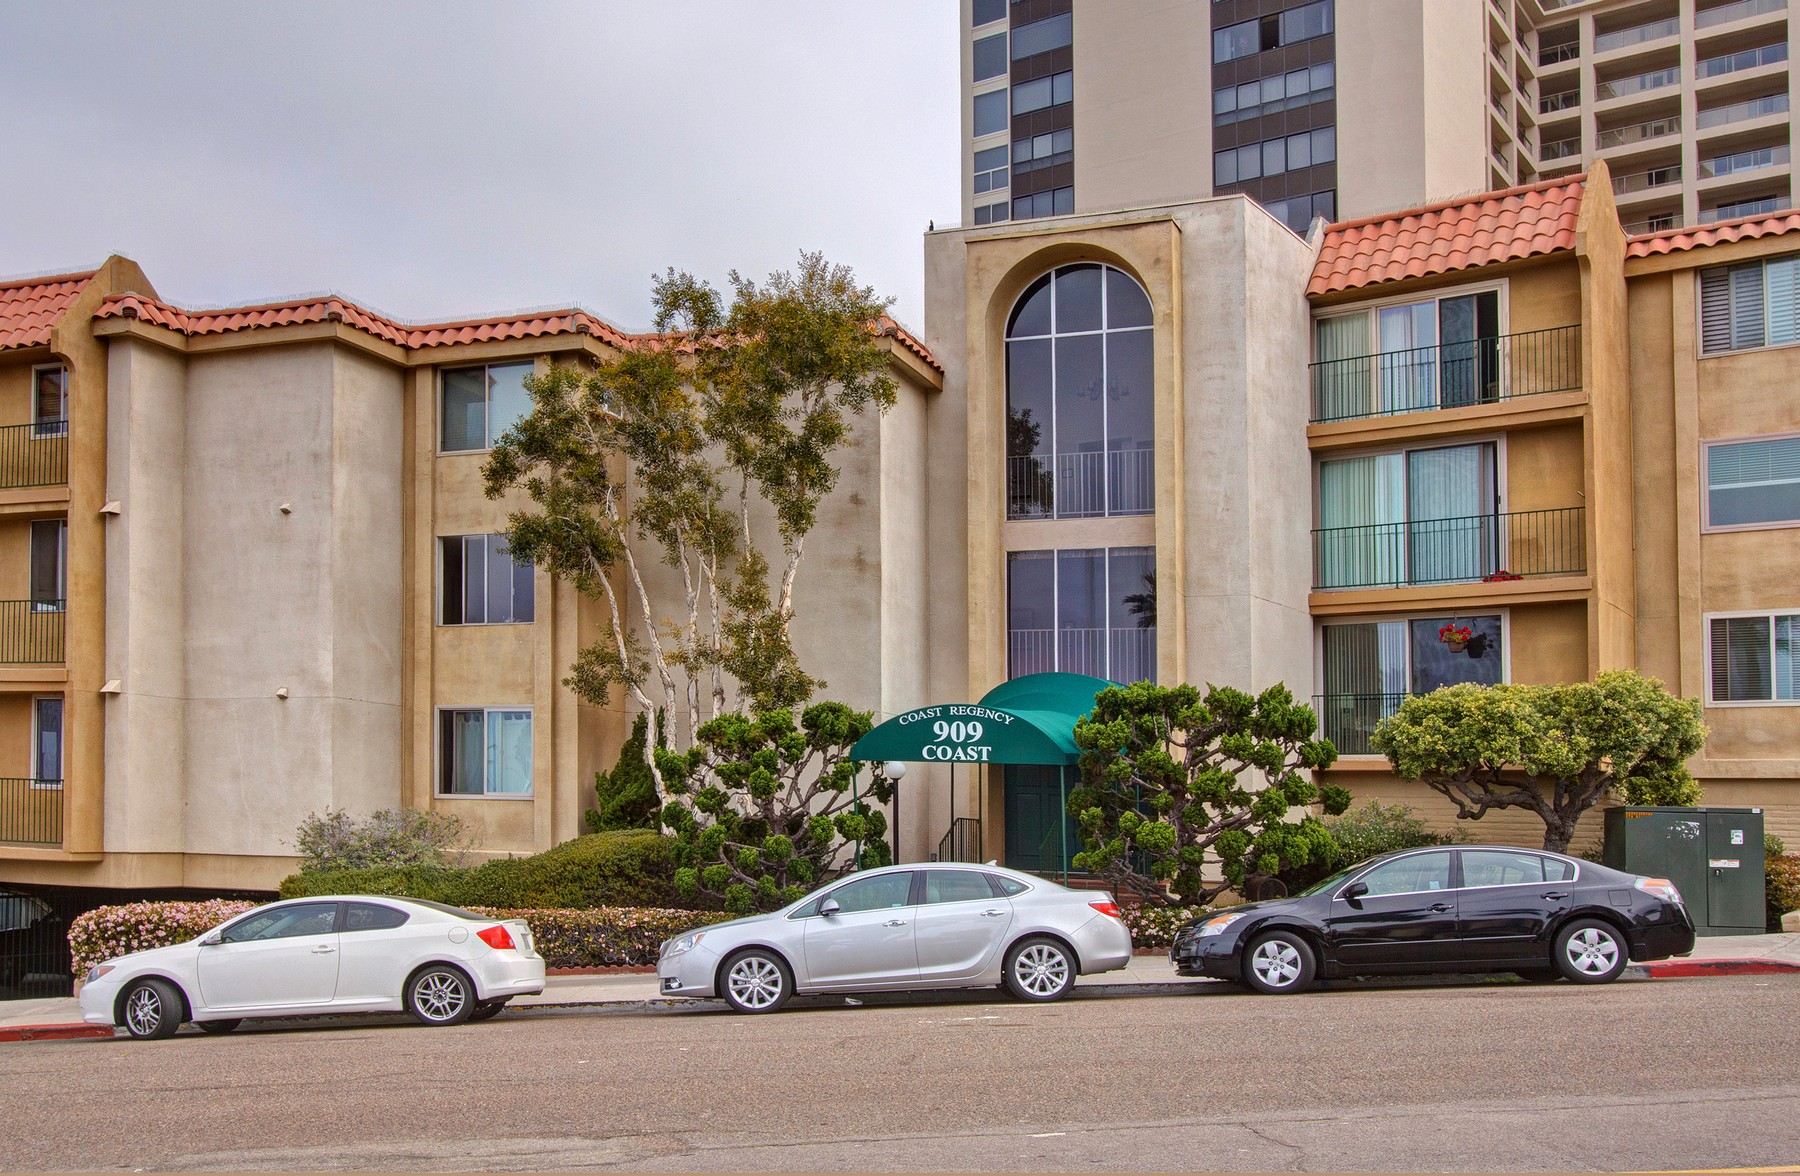 Additional photo for property listing at Coast Regency 909 Coast Blvd Unit 6 La Jolla, California 92037 Estados Unidos